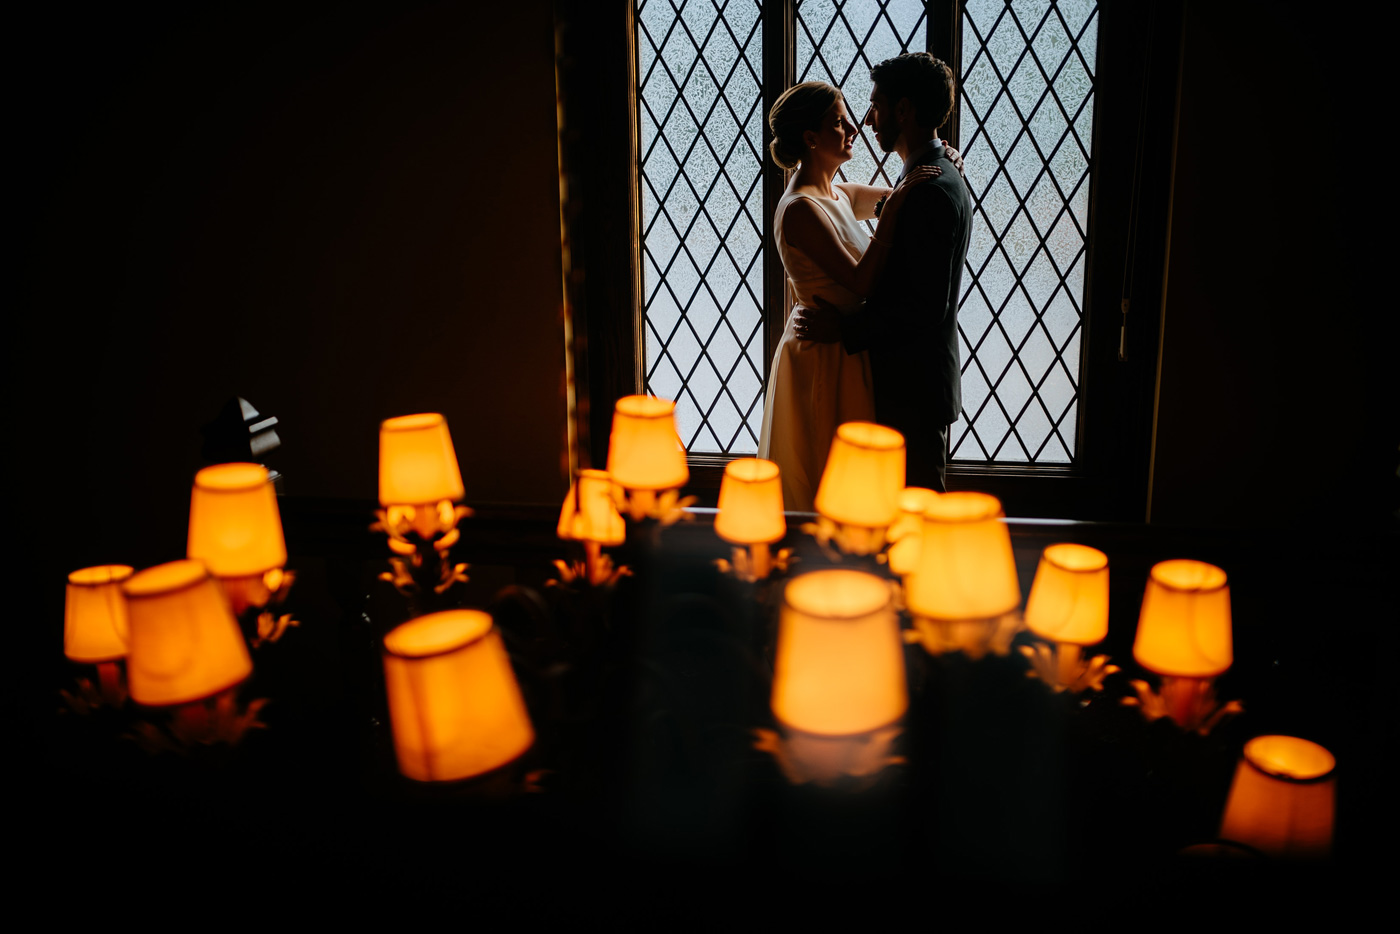 cool silhouette wedding photo